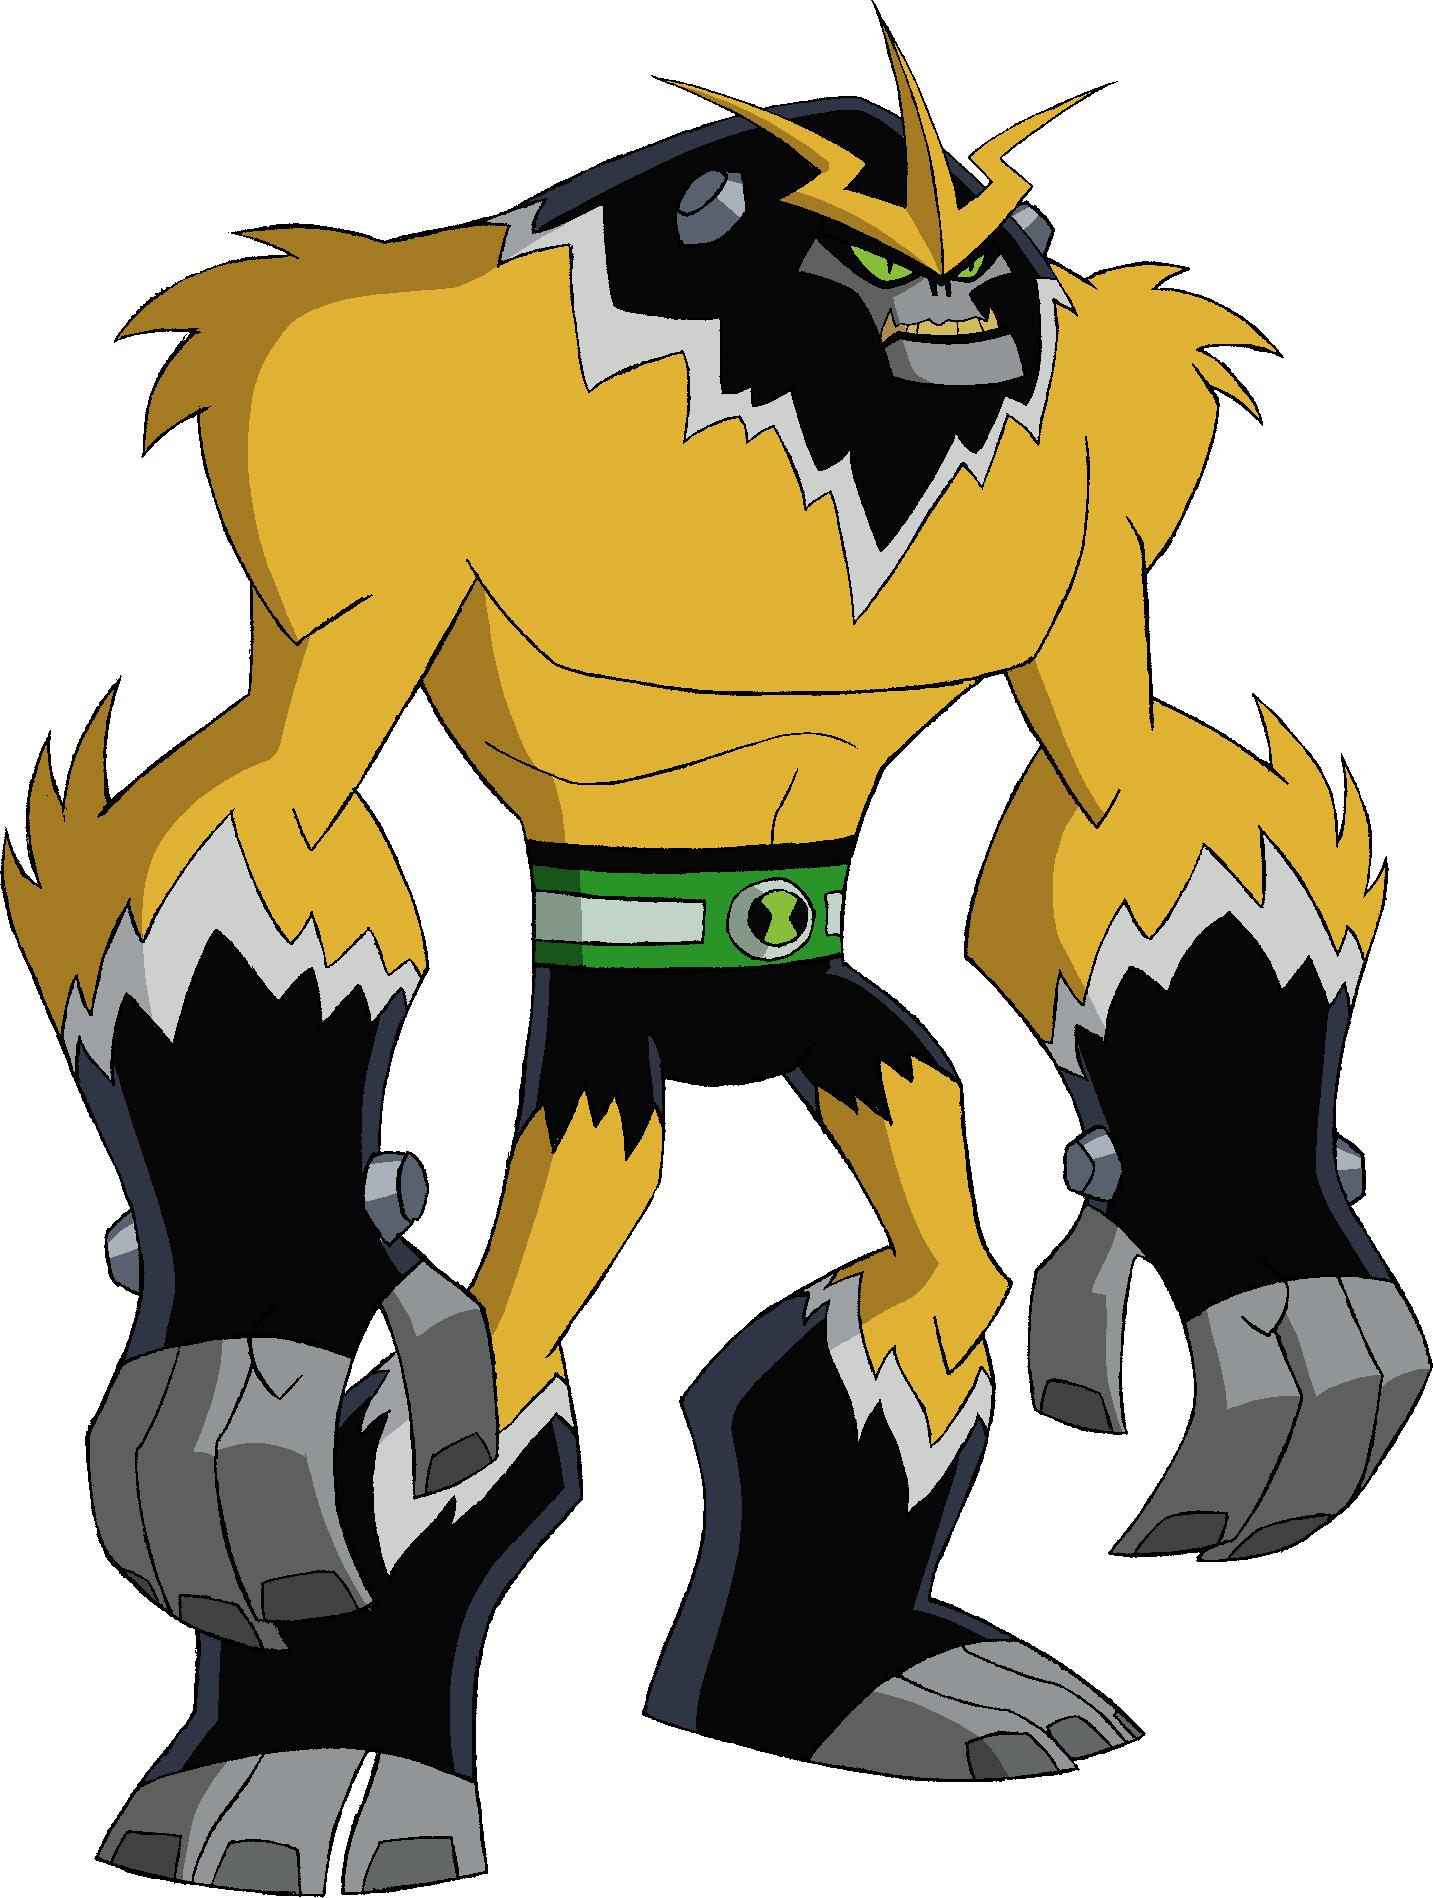 http://images.wikia.com/ben10/images/a/a6/Shocksquatch_omniverse_official.png